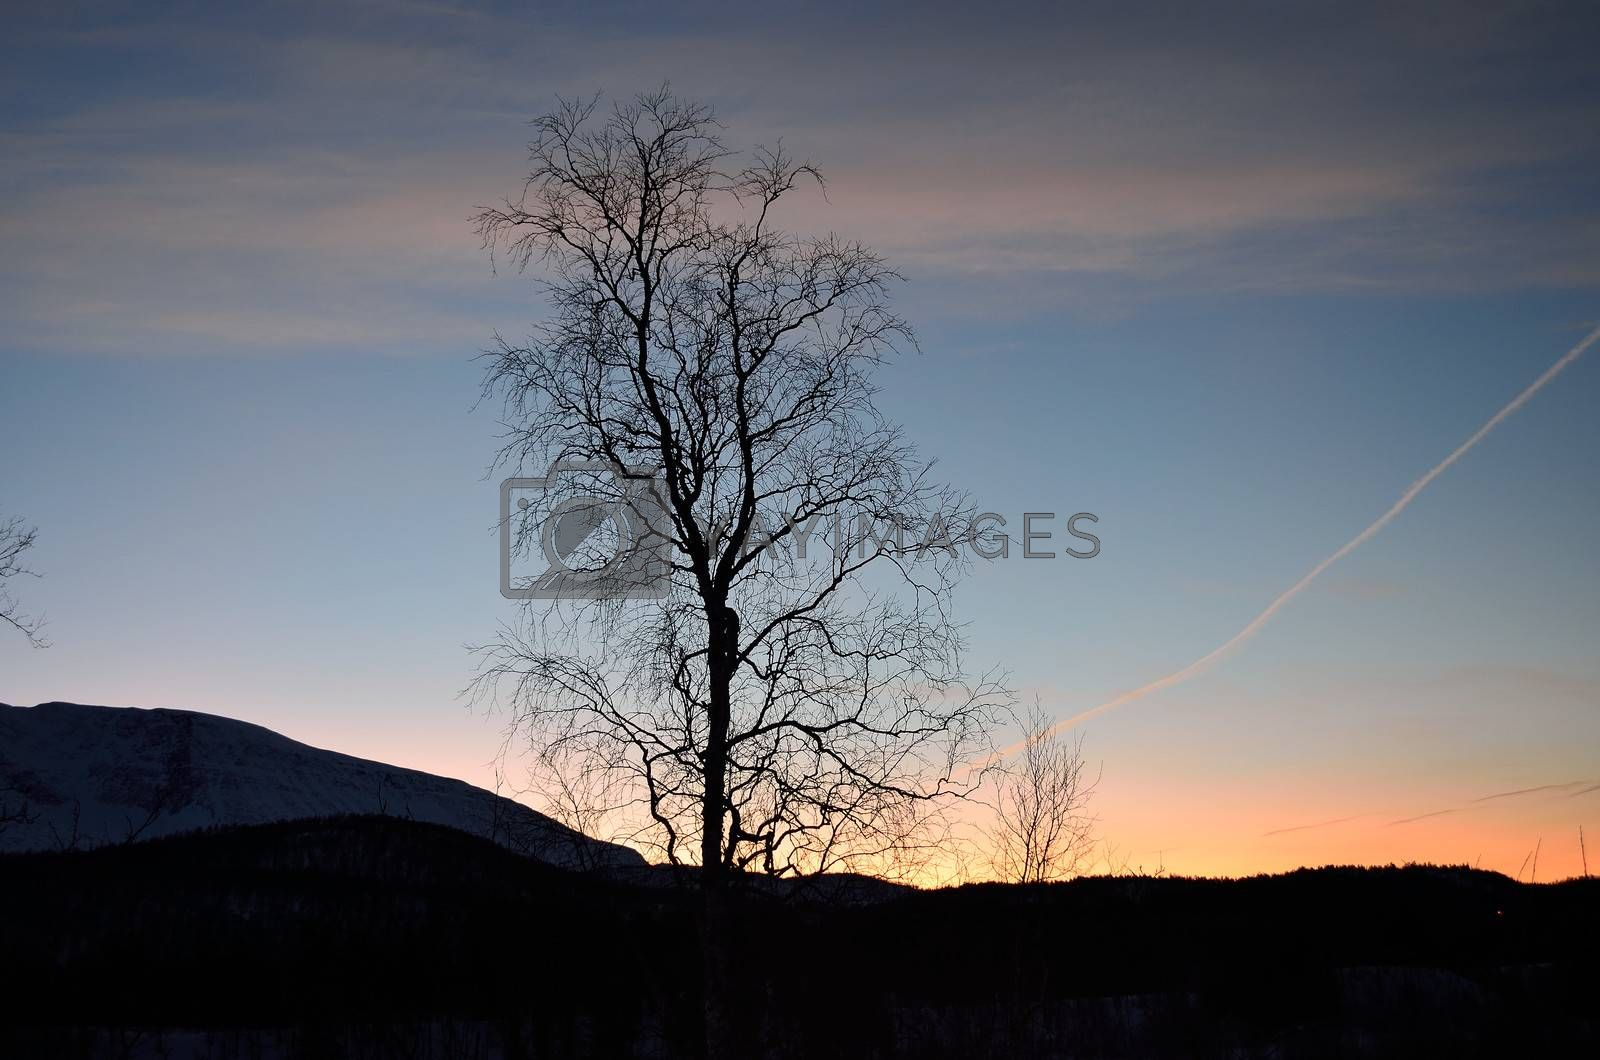 Royalty free image of lone tree in front of colorful dawn sky by Finephotoworks